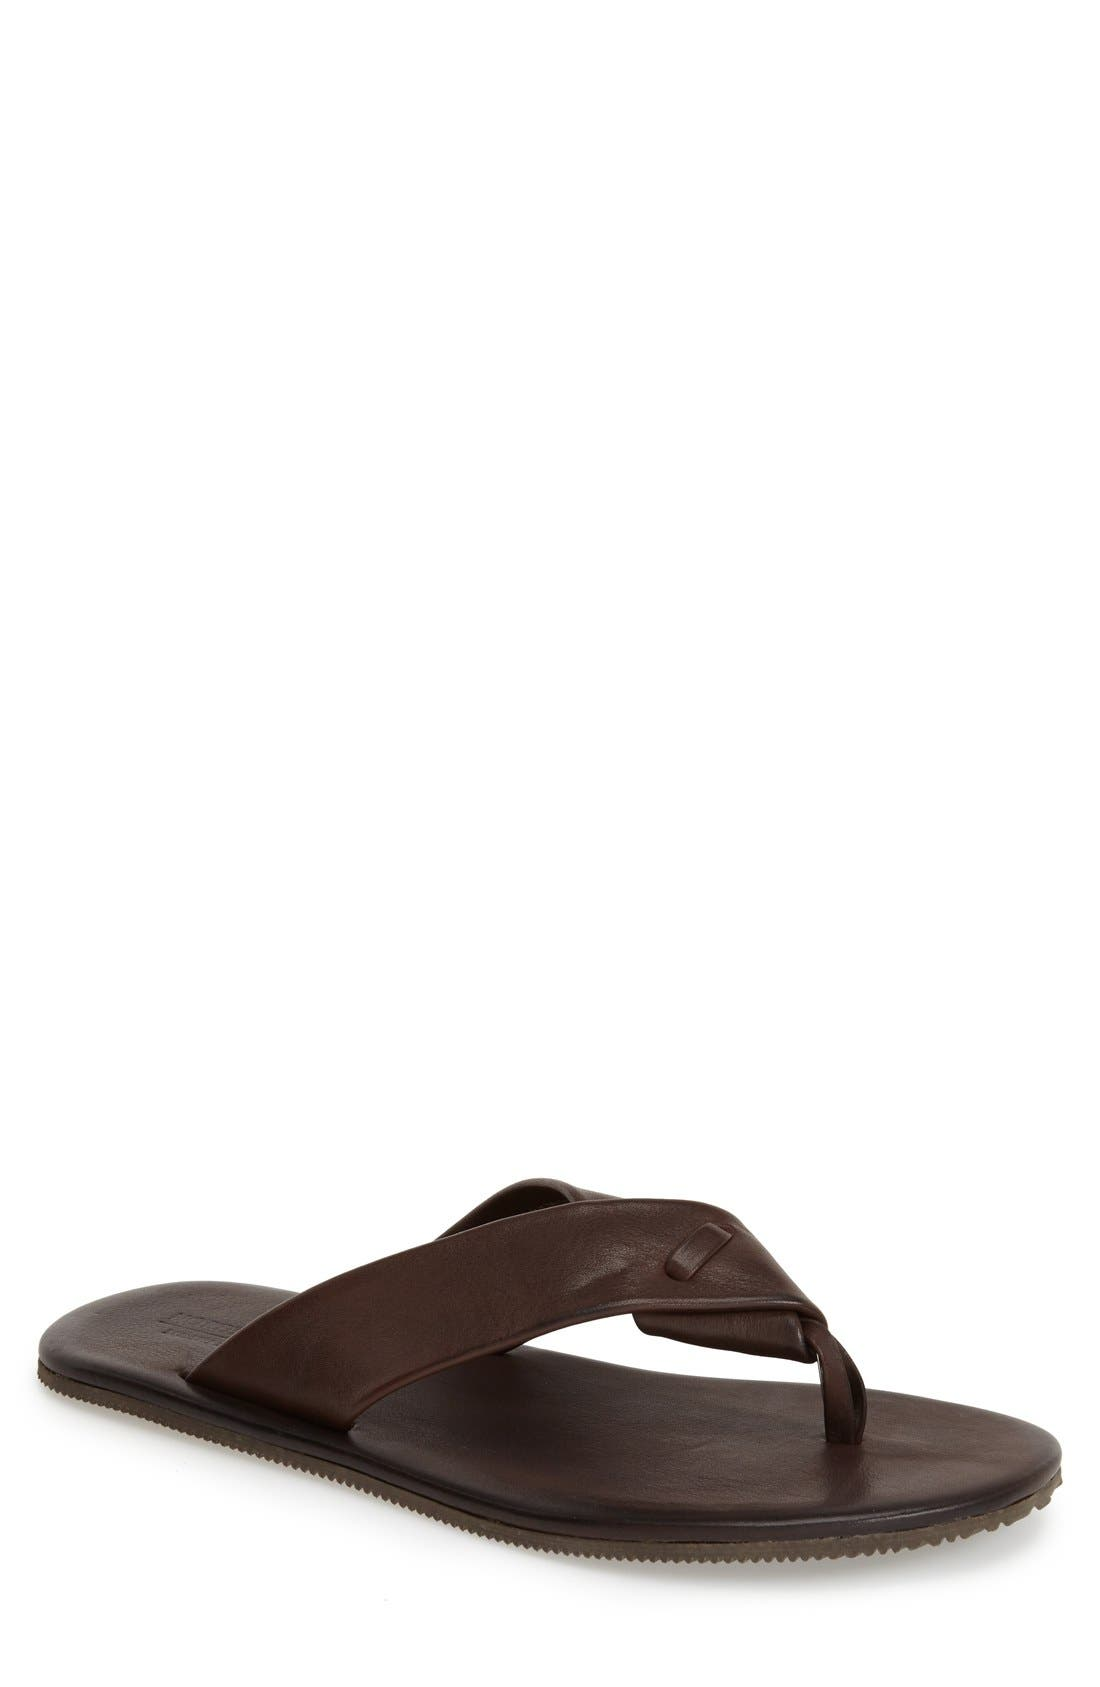 Main Image - Nordstrom Men's Shop 'Breeze' Flip Flop (Men)